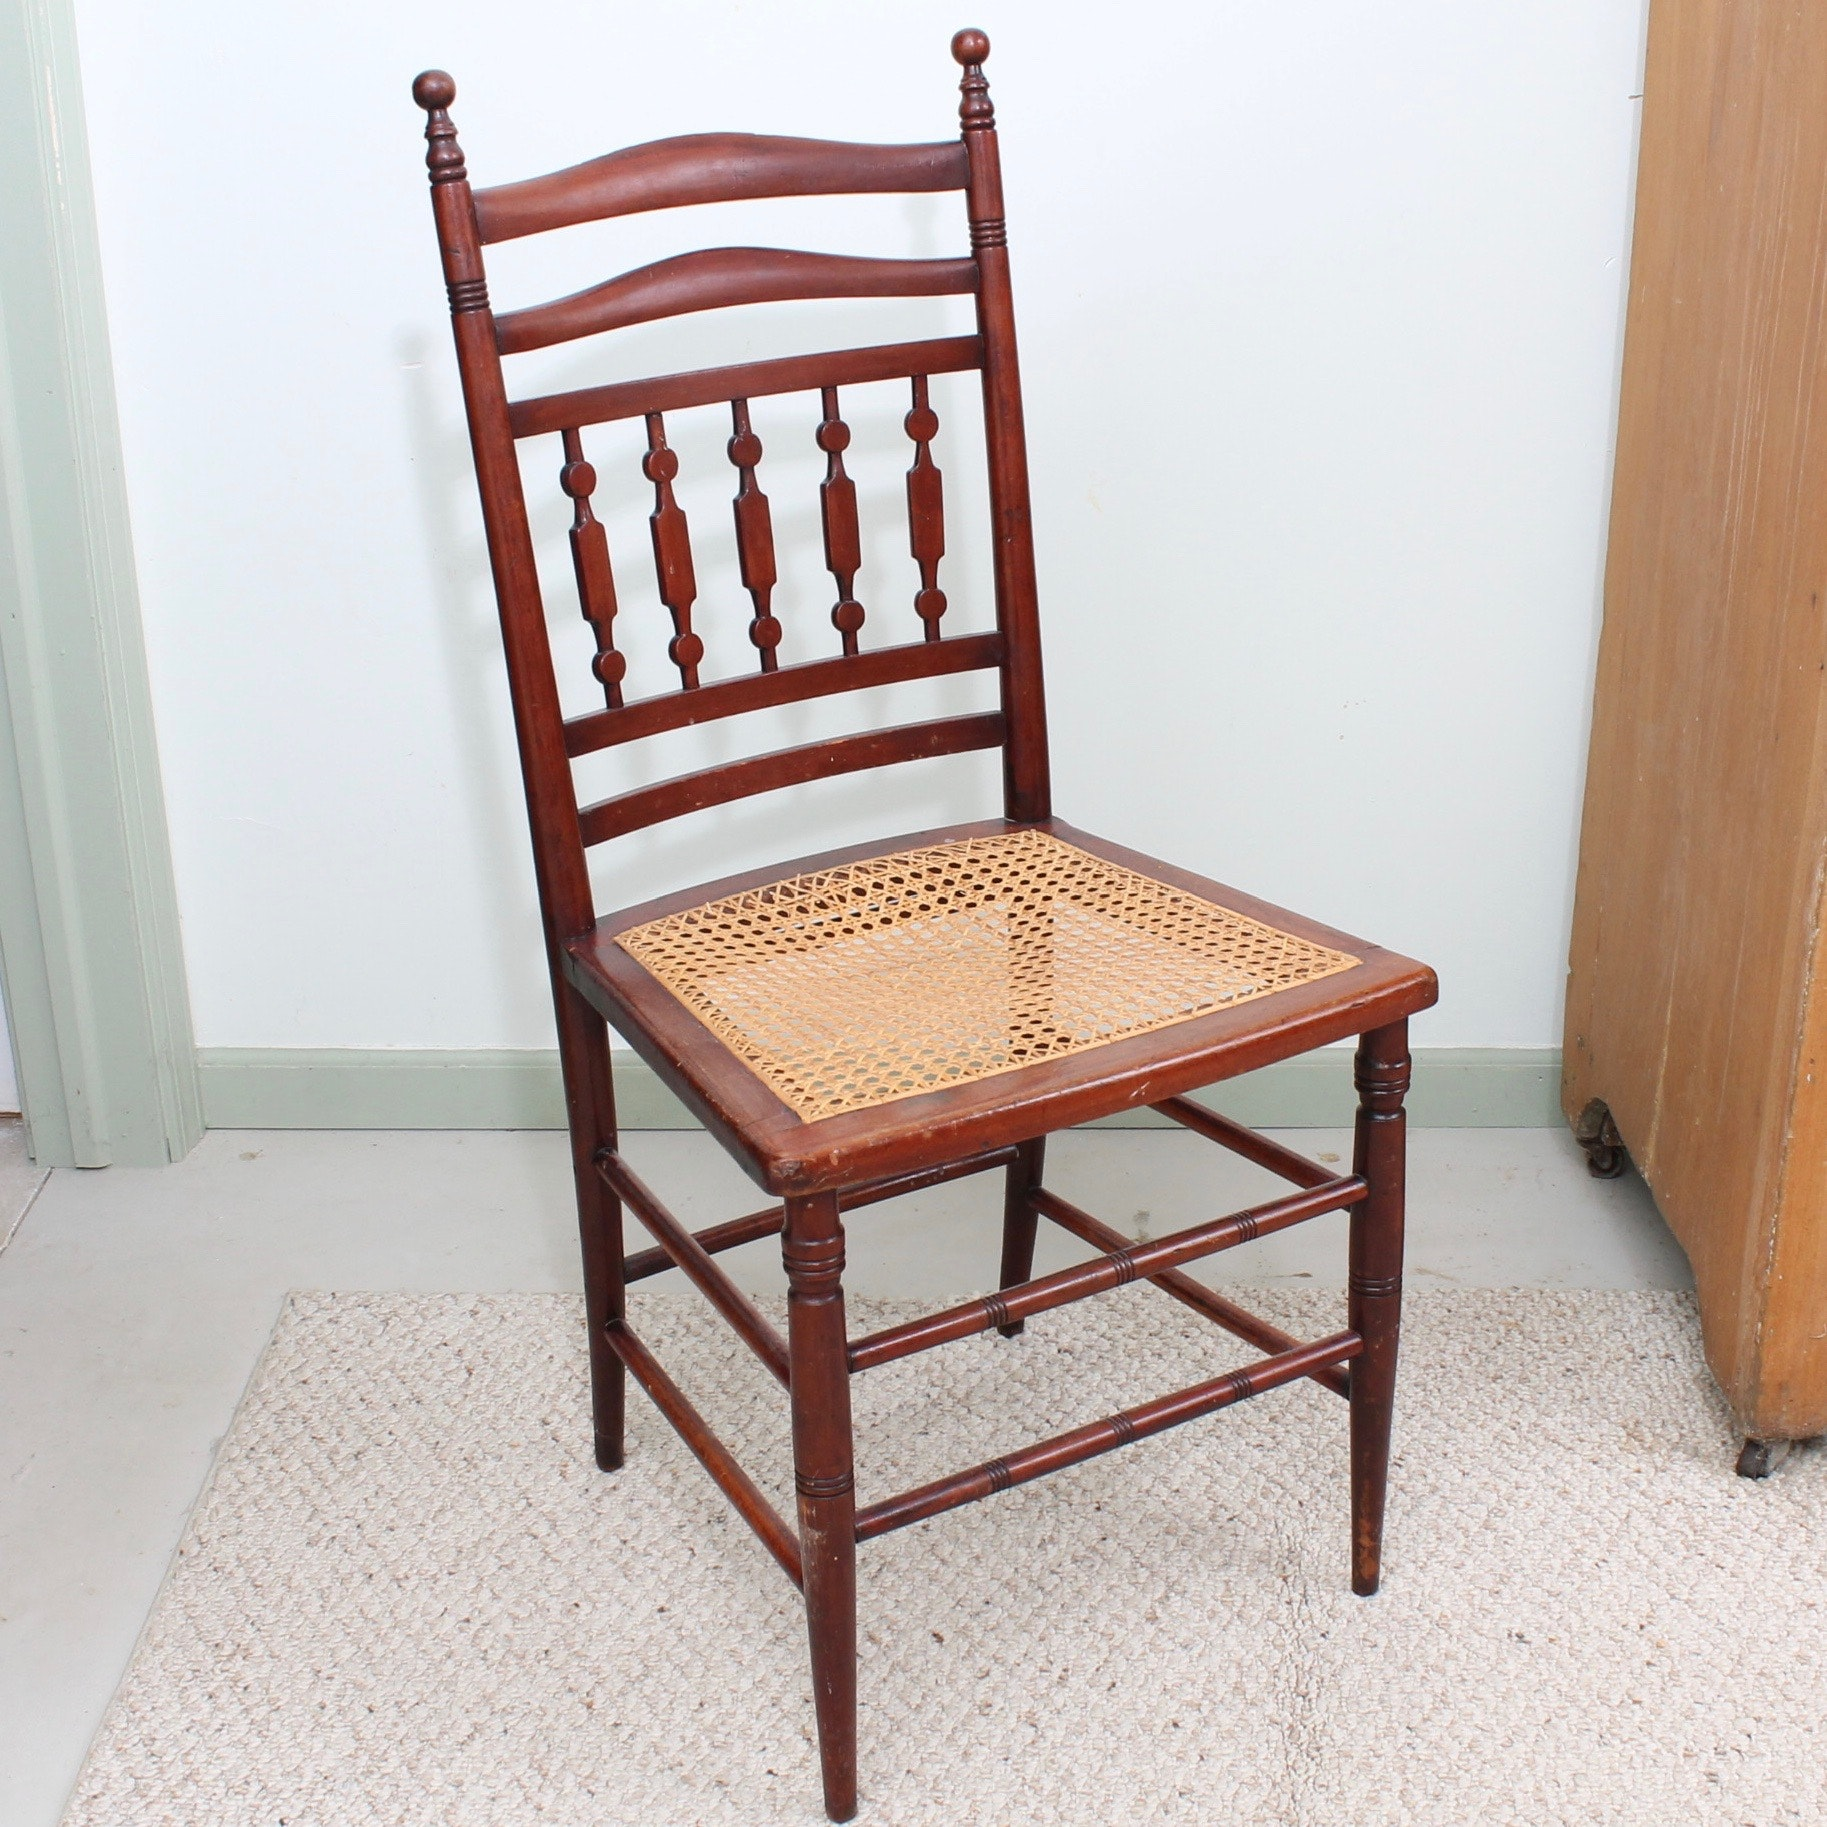 Antique Dining Chair with Cane Seat